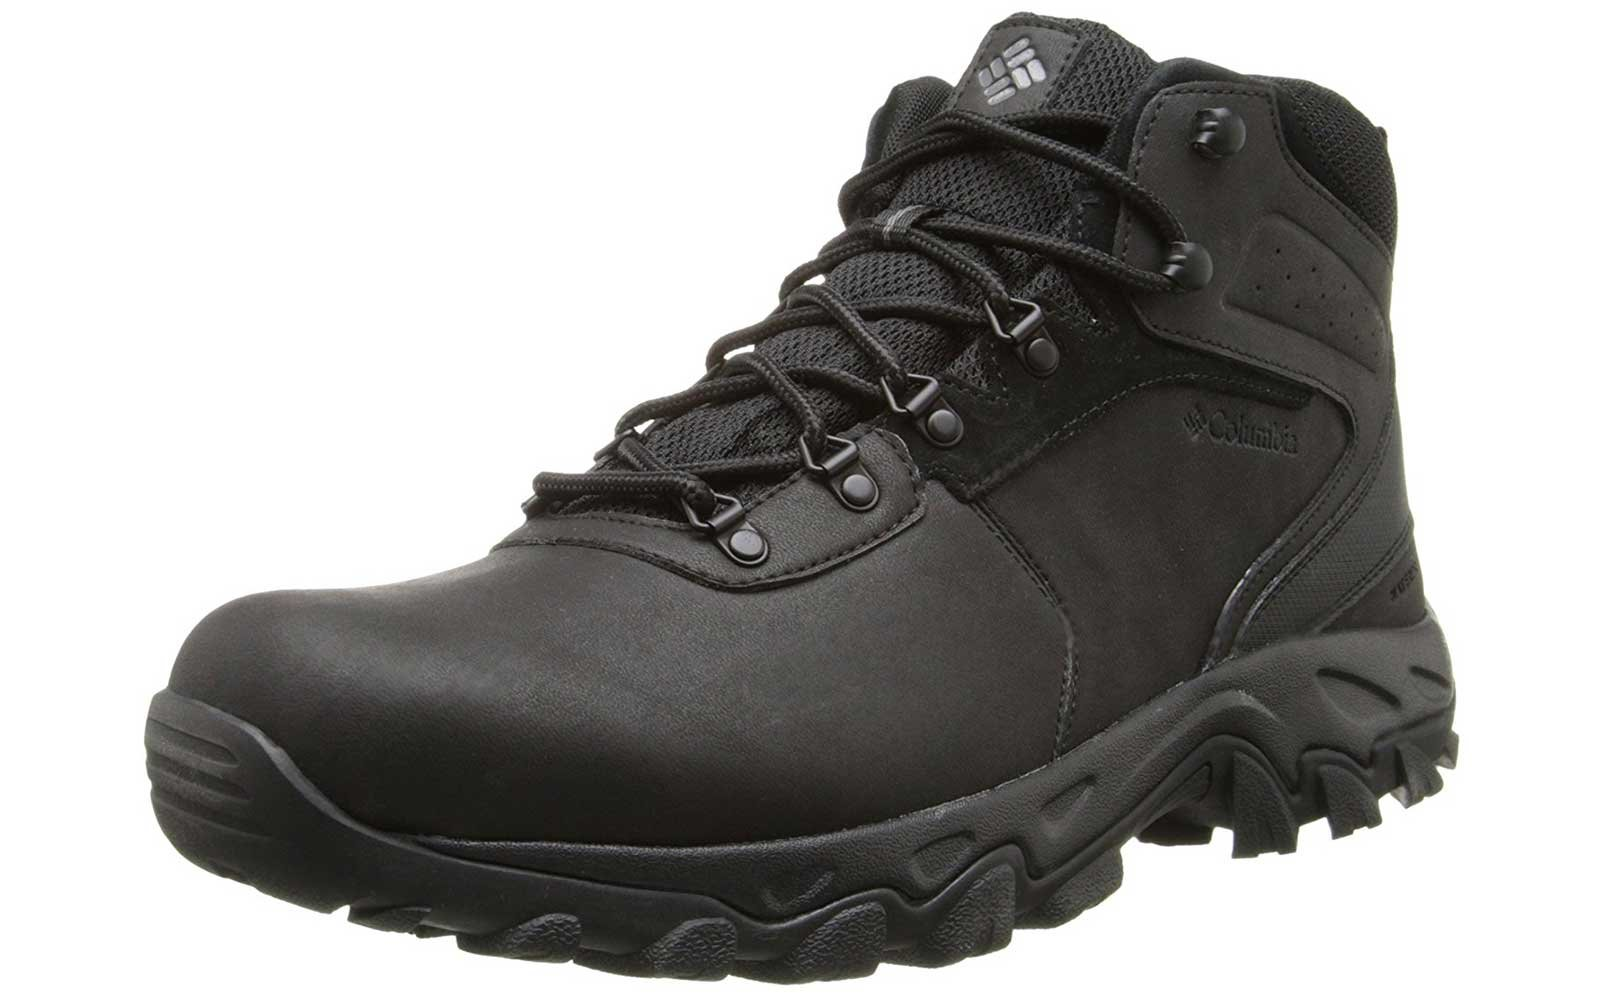 Columbia Hiking Boots for Men